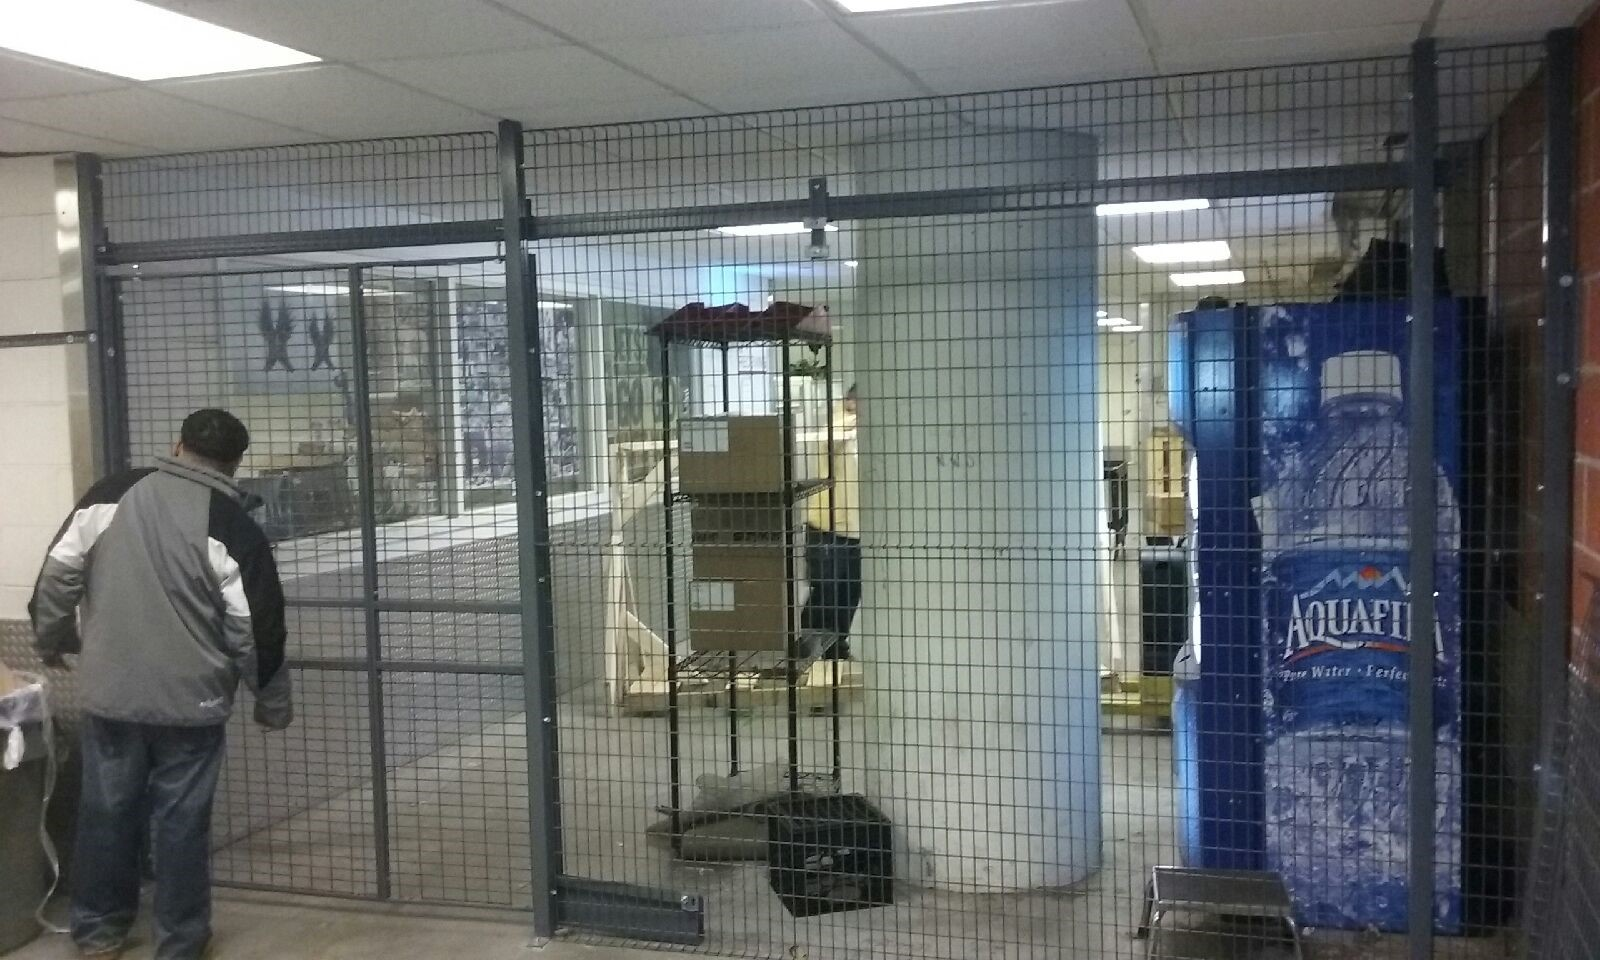 Welded Wire Partitions Cages Yonkers